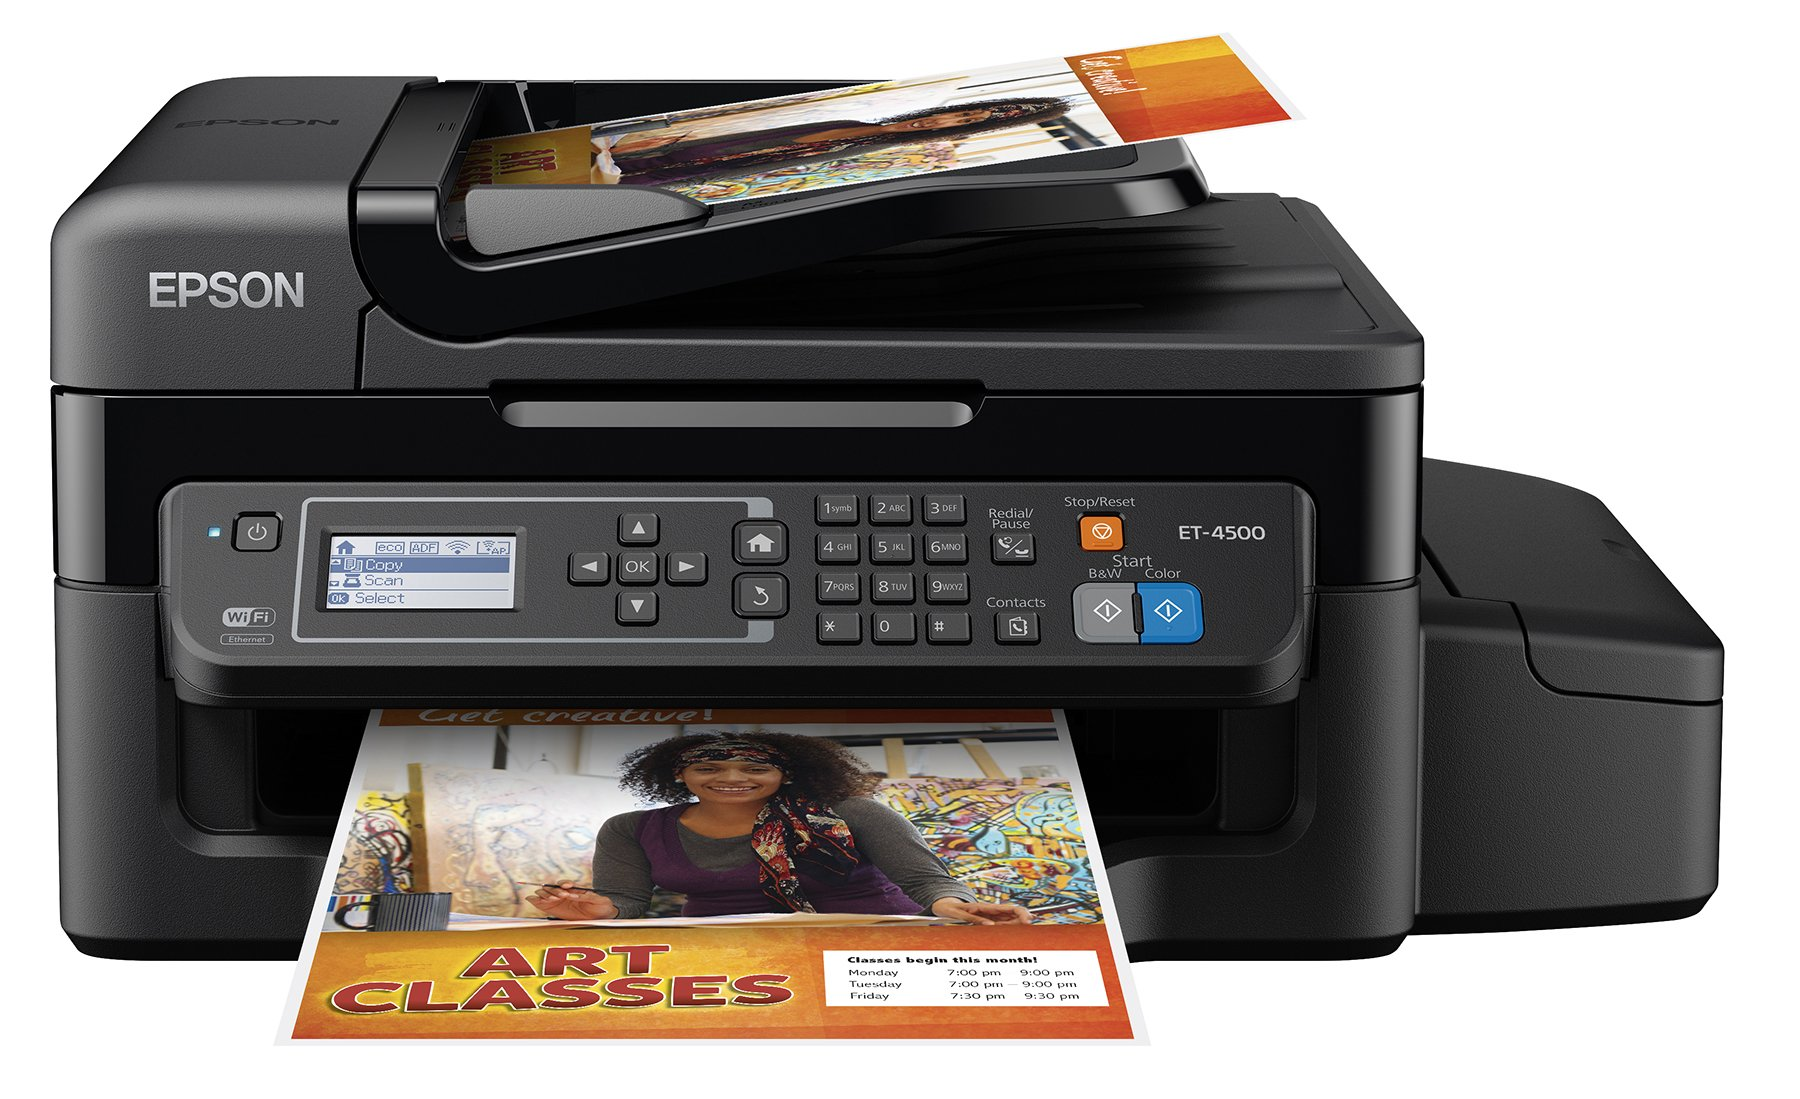 Epson WorkForce ET-4500 EcoTank Wireless Color All-in-One Supertank Printer with Scanner, Copier, Fax, Ethernet, Wi-Fi, Wi-Fi Direct, Tablet and Smartphone (iPad, iPhone, Android) Printing, Easily Refillable Ink Tanks